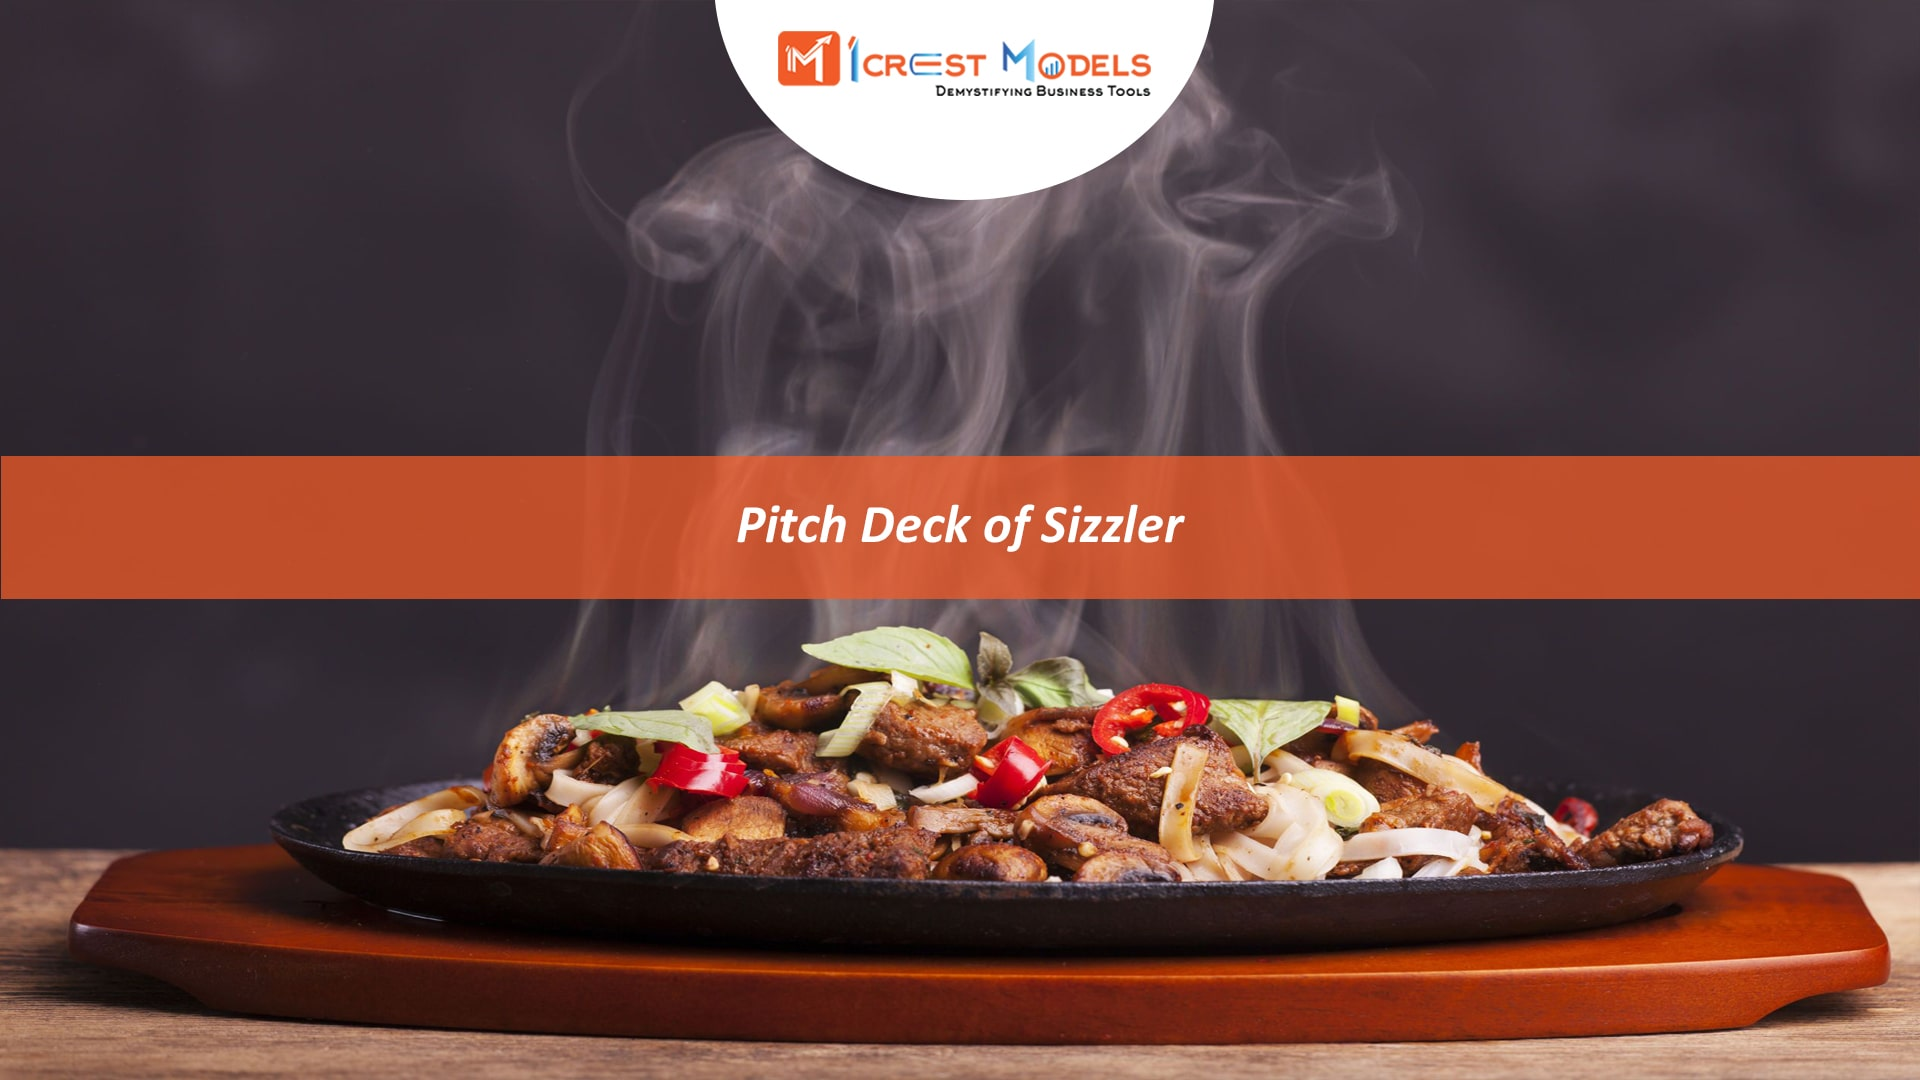 Pitch Deck of a Sizzler Cafe and Restaurant